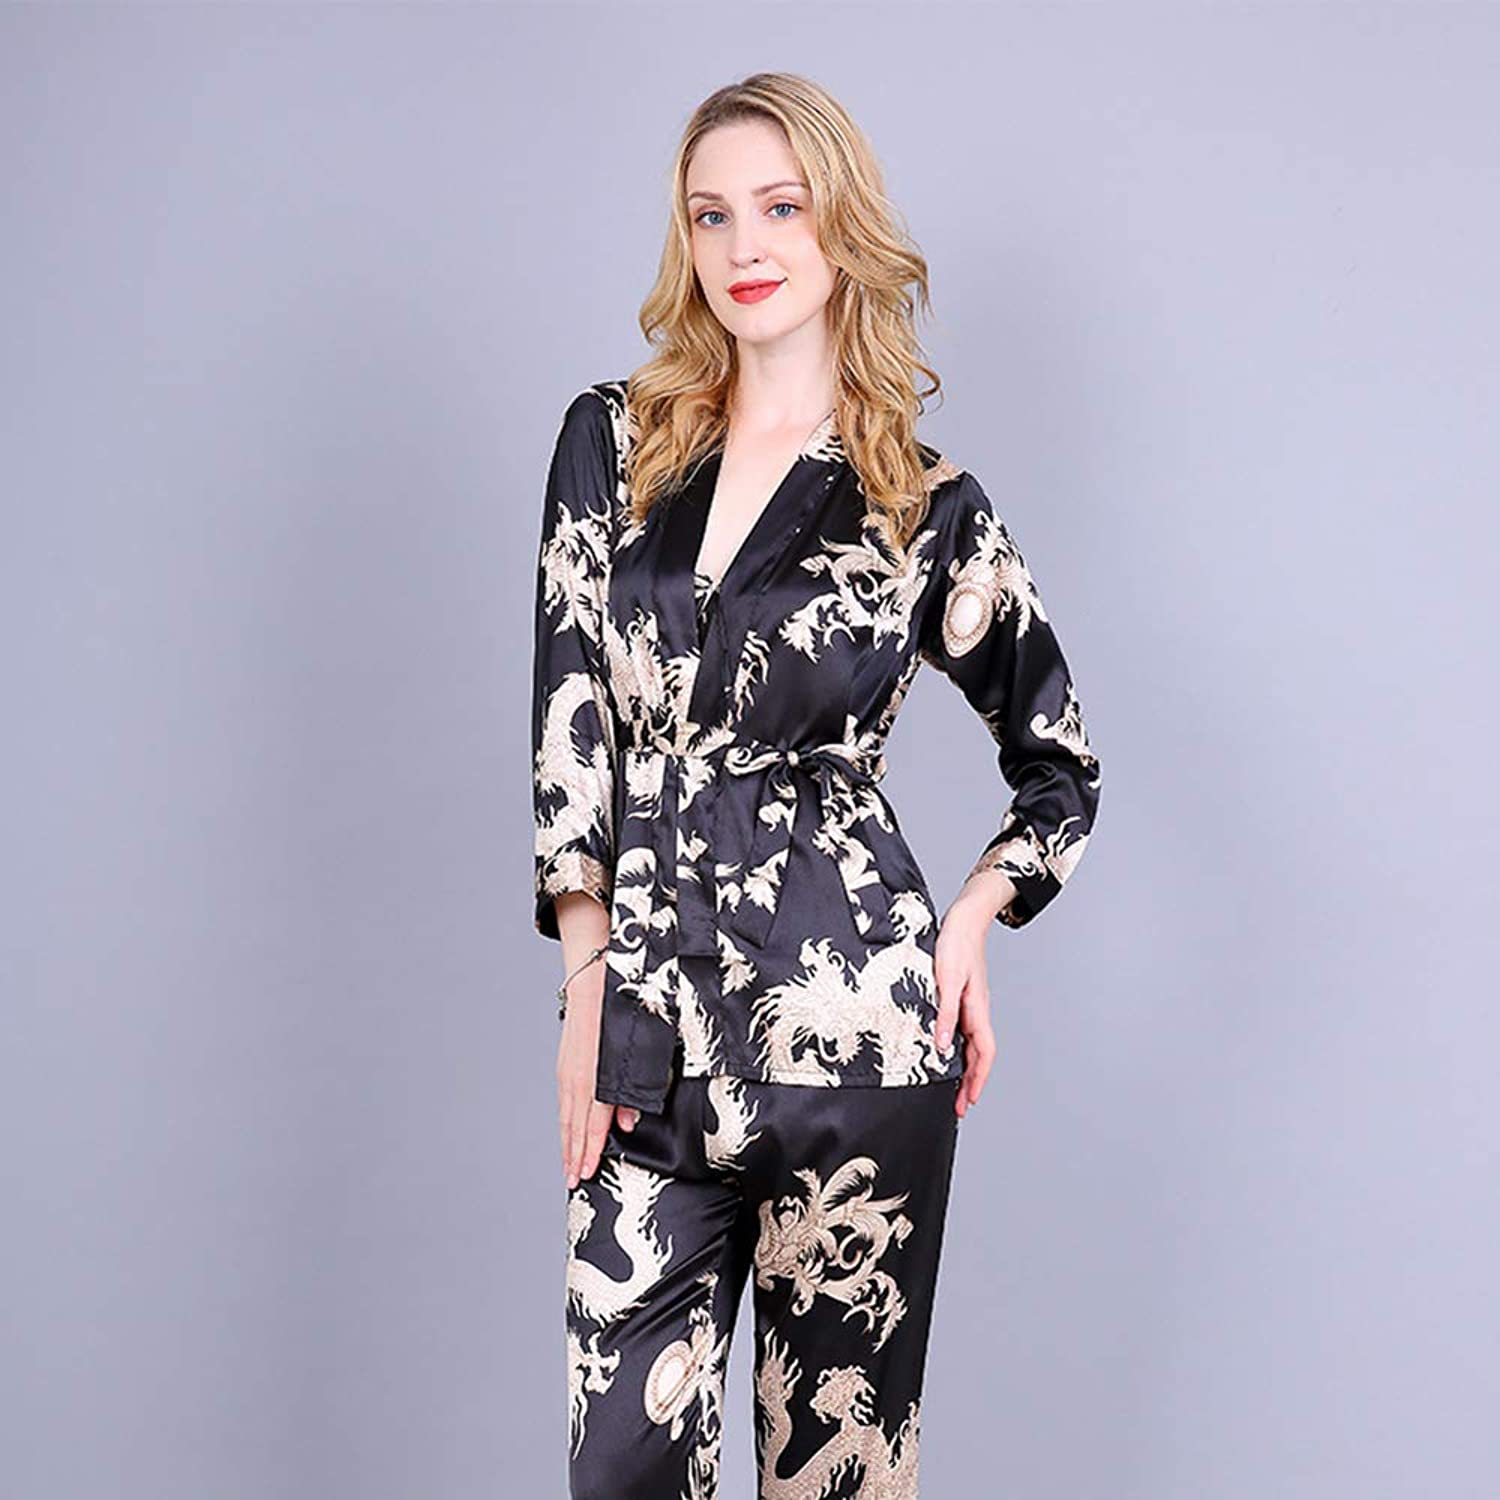 Women's Autumn Nightgown Sexy Elegant Nightgown Home Service Couples Women's Pajamas and LongSleeved Home Clothes